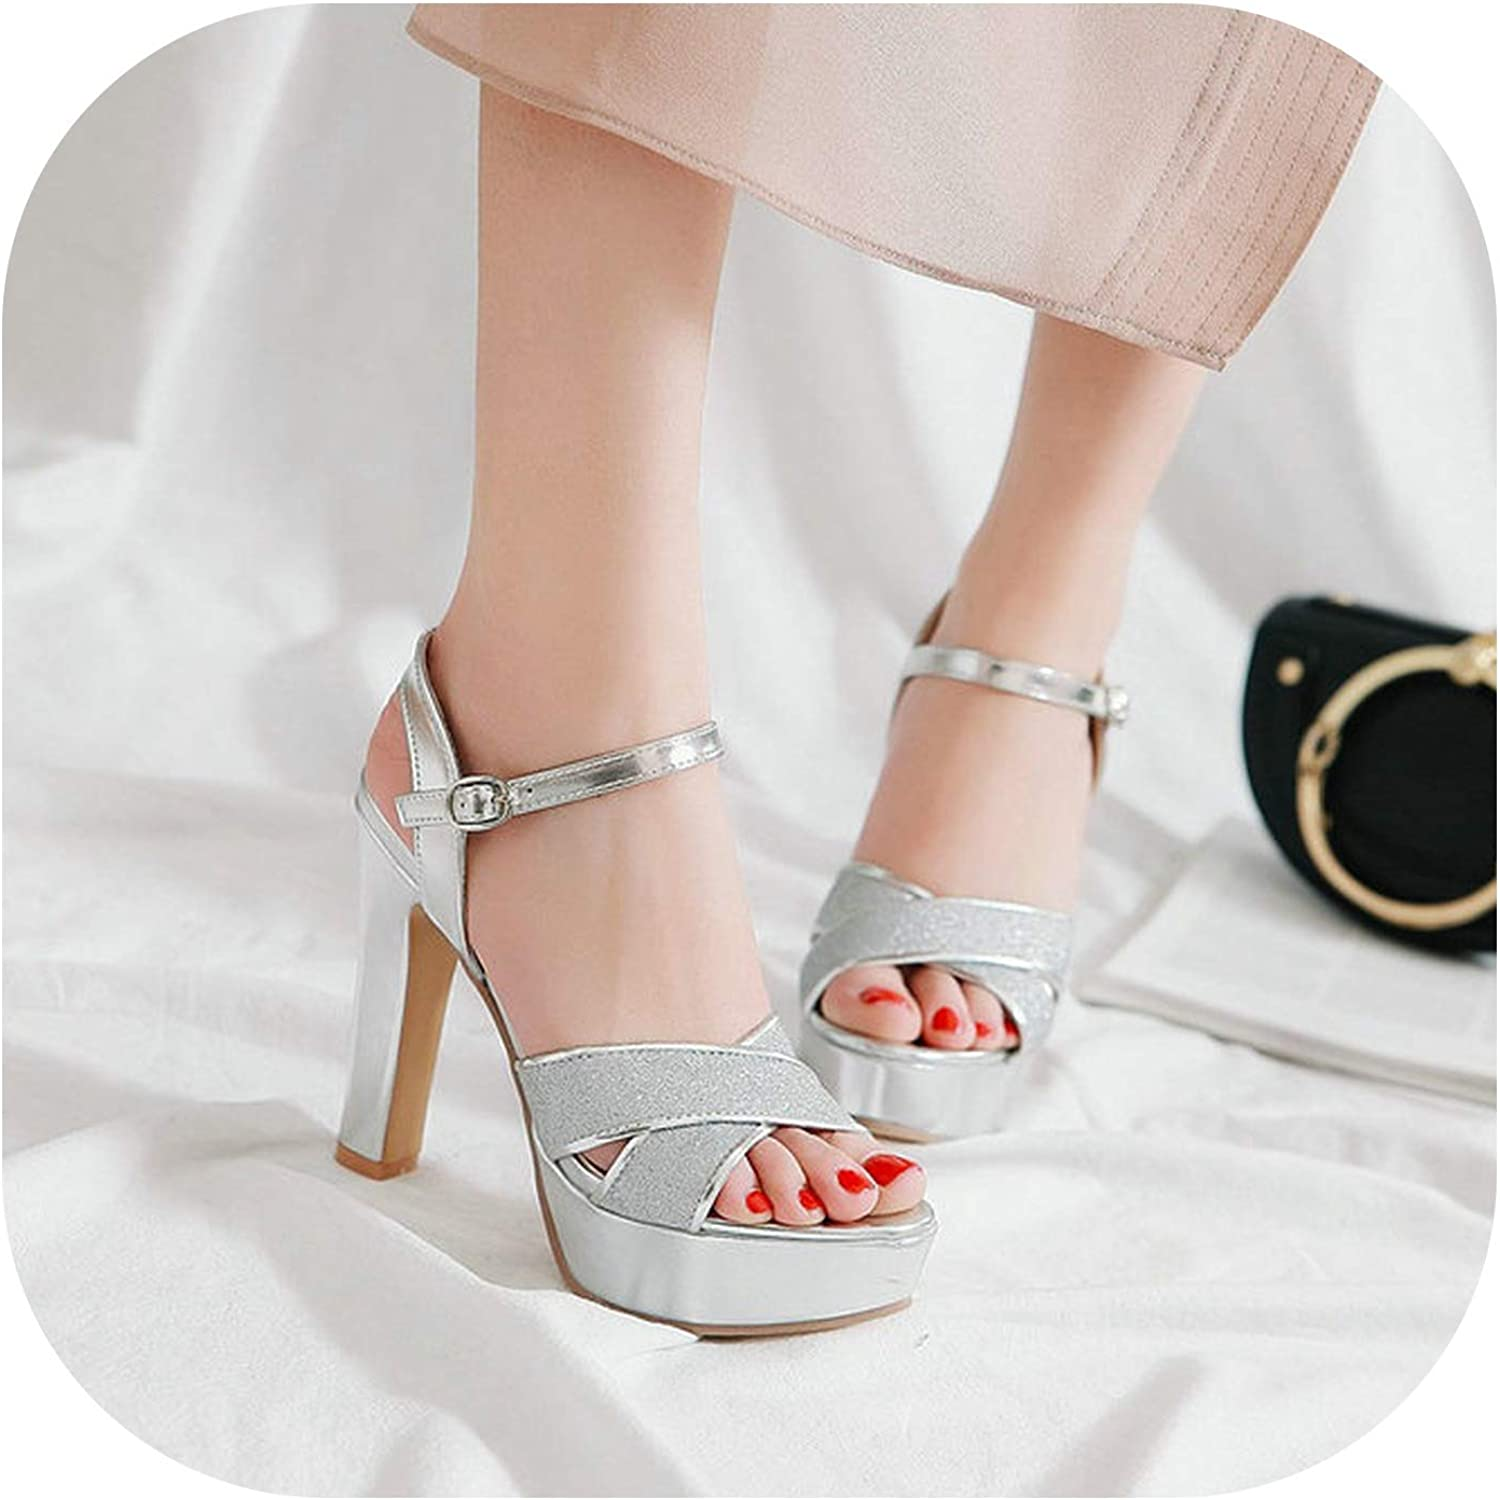 Women Summer Platform High Heels Sandals Buckle Open Toe Buckle Sq re High Heels Pumps Party Dress shoes Female 2019 Size 43